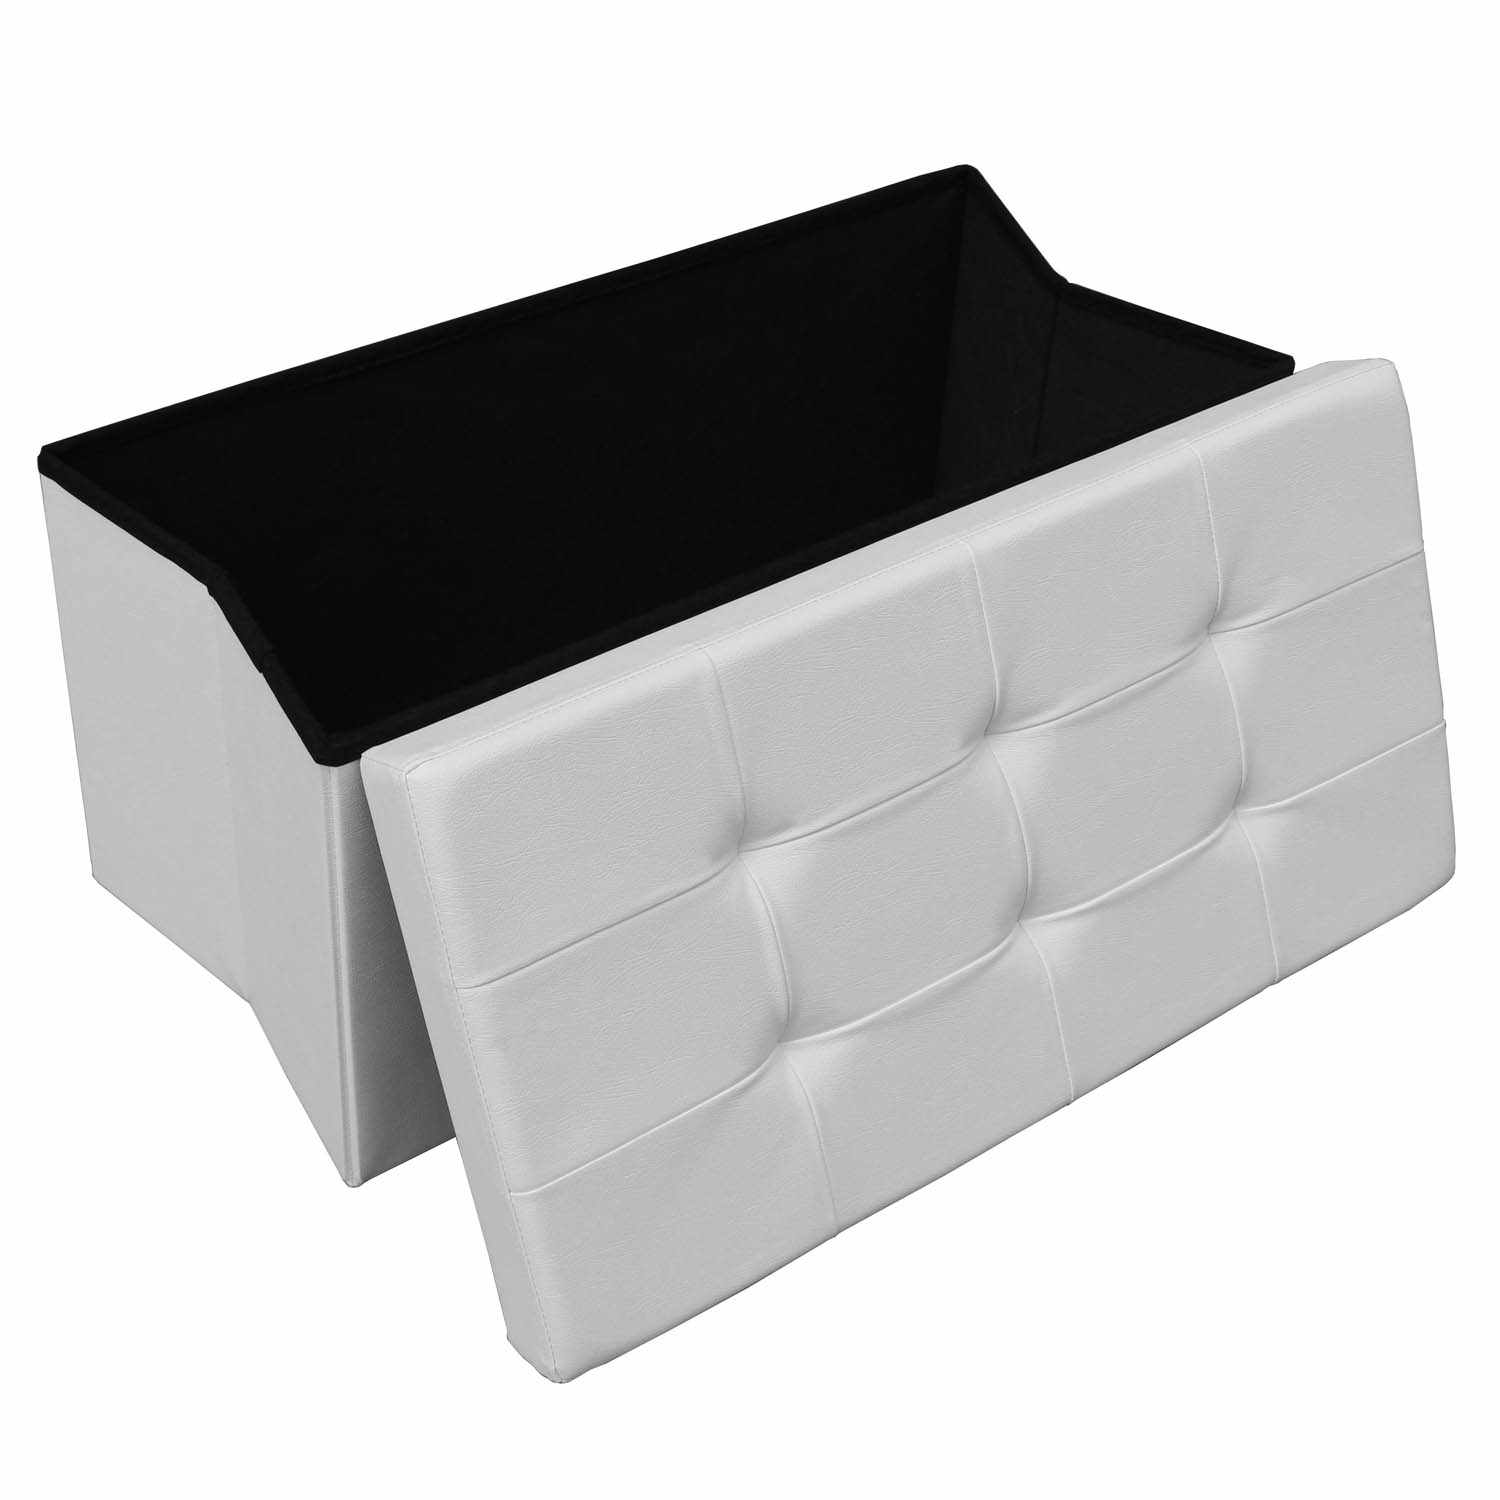 lit pliable ikea ikea with lit pliable ikea pouf lit d appoint ikea with lit pliable ikea. Black Bedroom Furniture Sets. Home Design Ideas